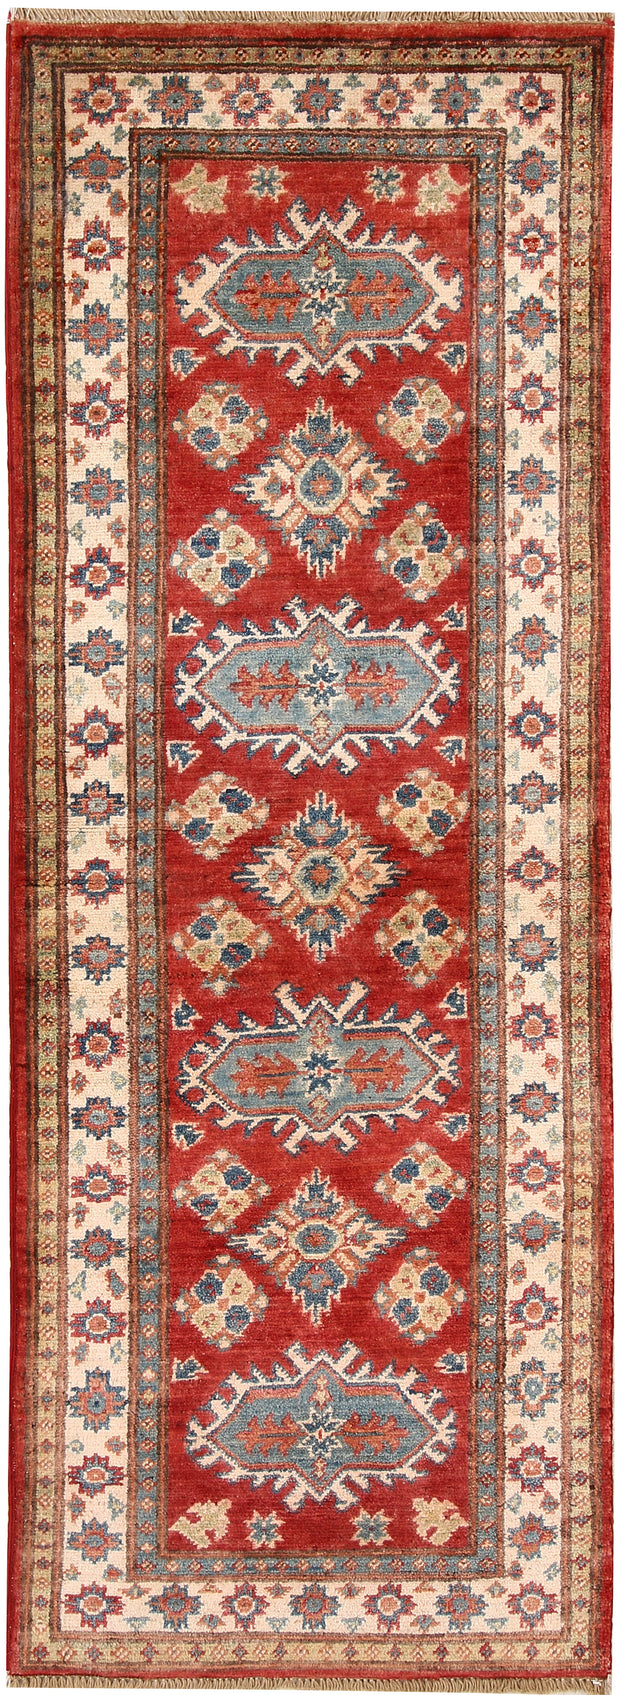 Orange Red Kazak 2' x 5' 8 - No. 66574 - ALRUG Rug Store